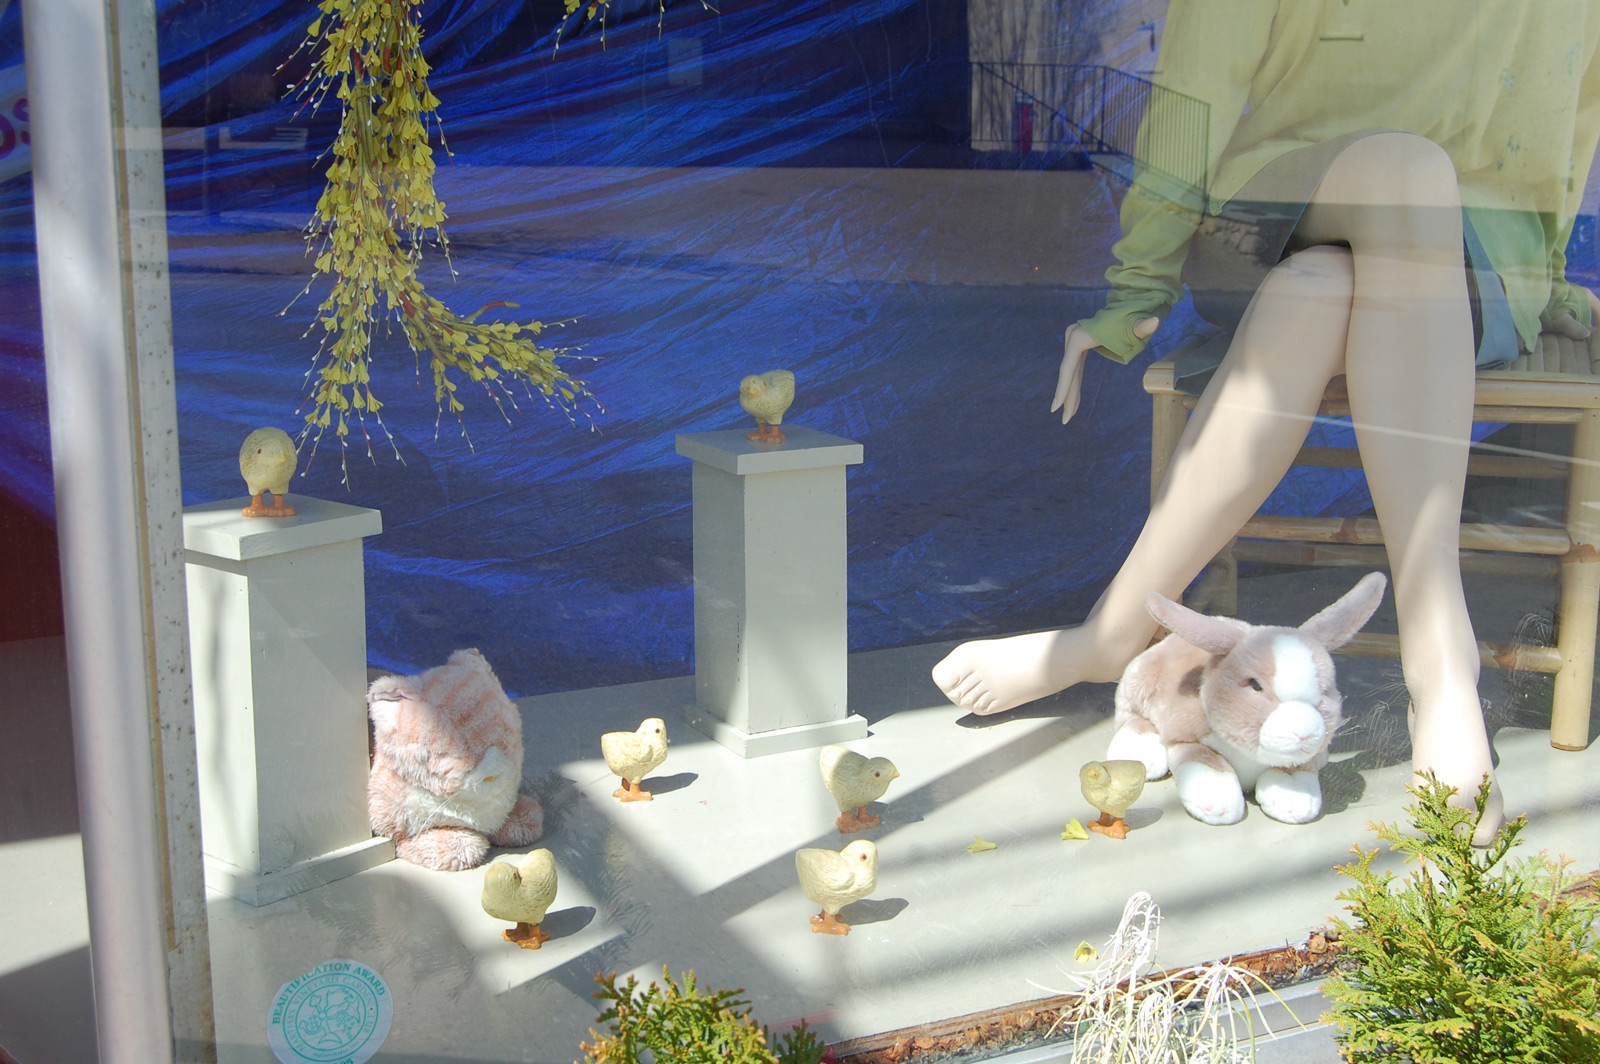 On a metallic blue background and a white floor, this window display made an Easter decoration with a sitting mannequin surrounded by a plush rabbit and a few little chicks.